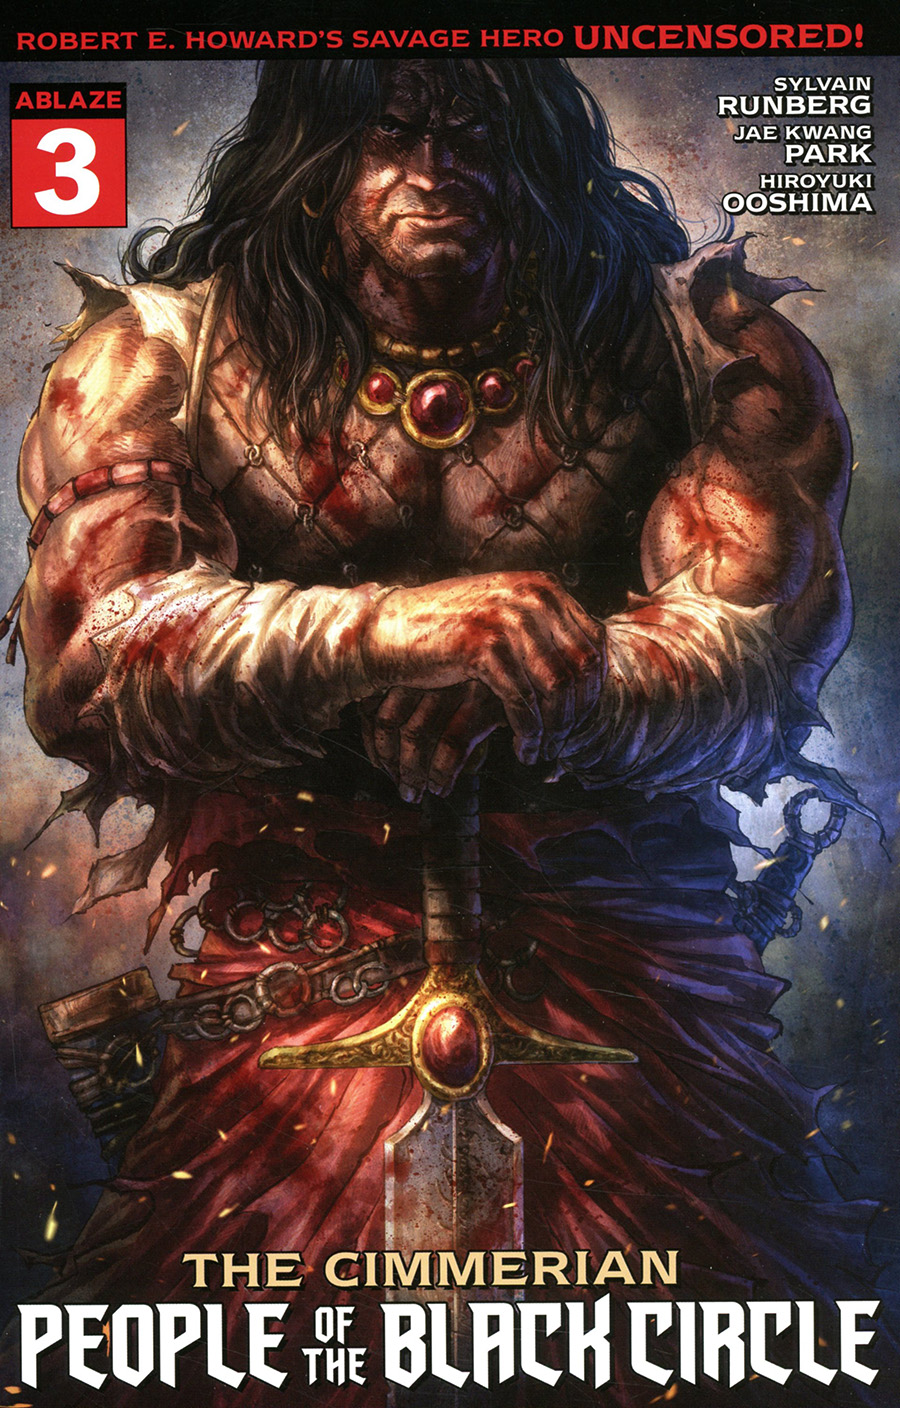 Cimmerian People Of The Black Circle #3 Cover A Regular Alan Quah Cover